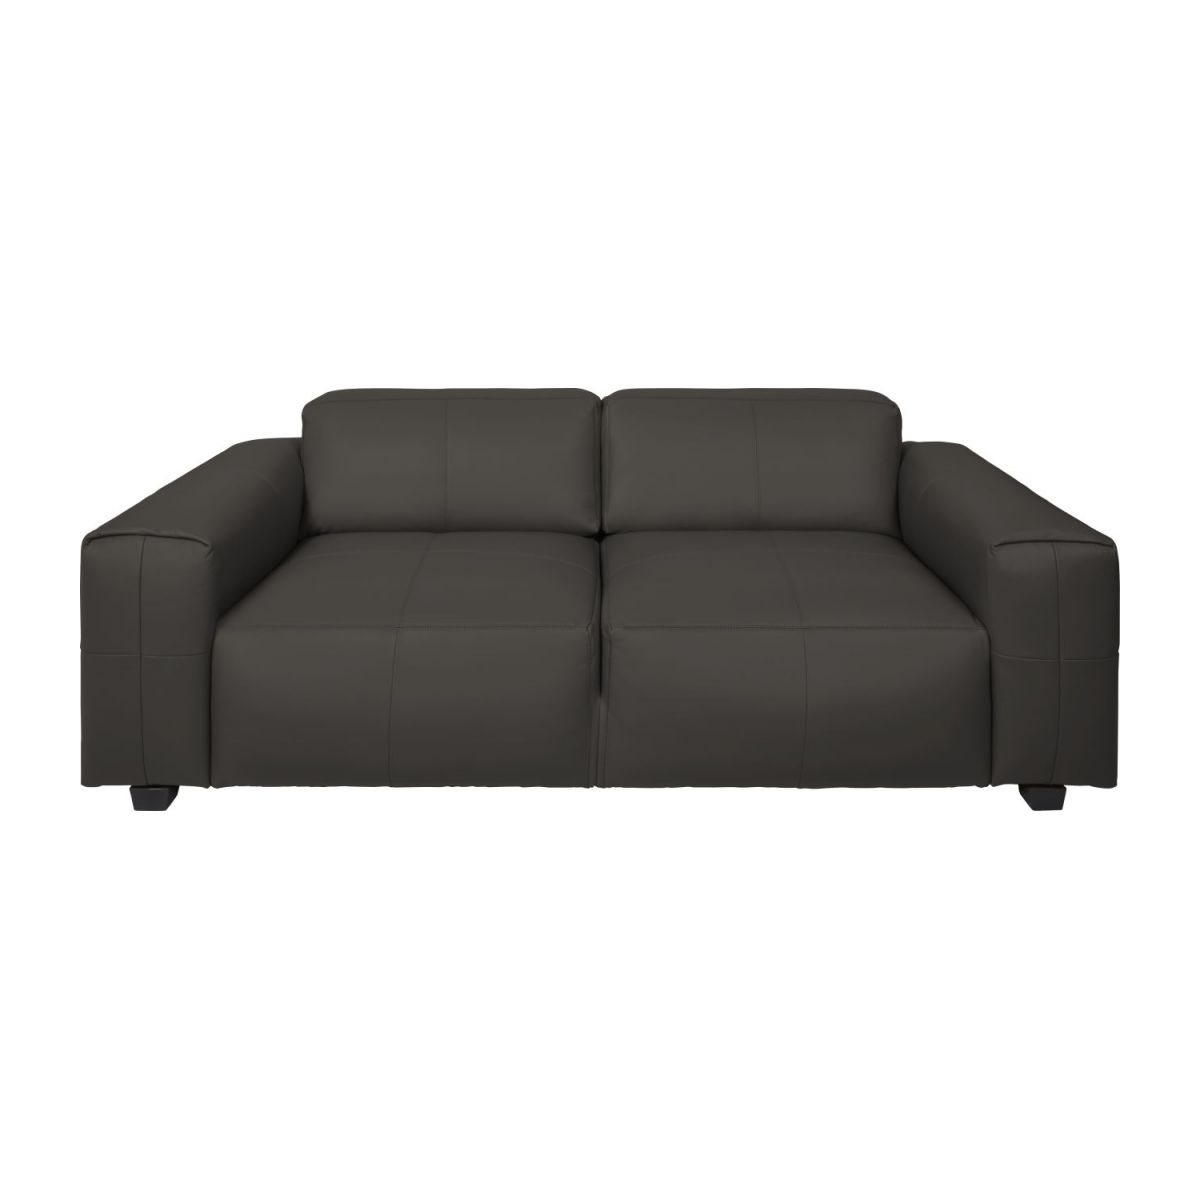 4 seater sofa in Savoy semi-aniline leather, dark brown amaretto n°3